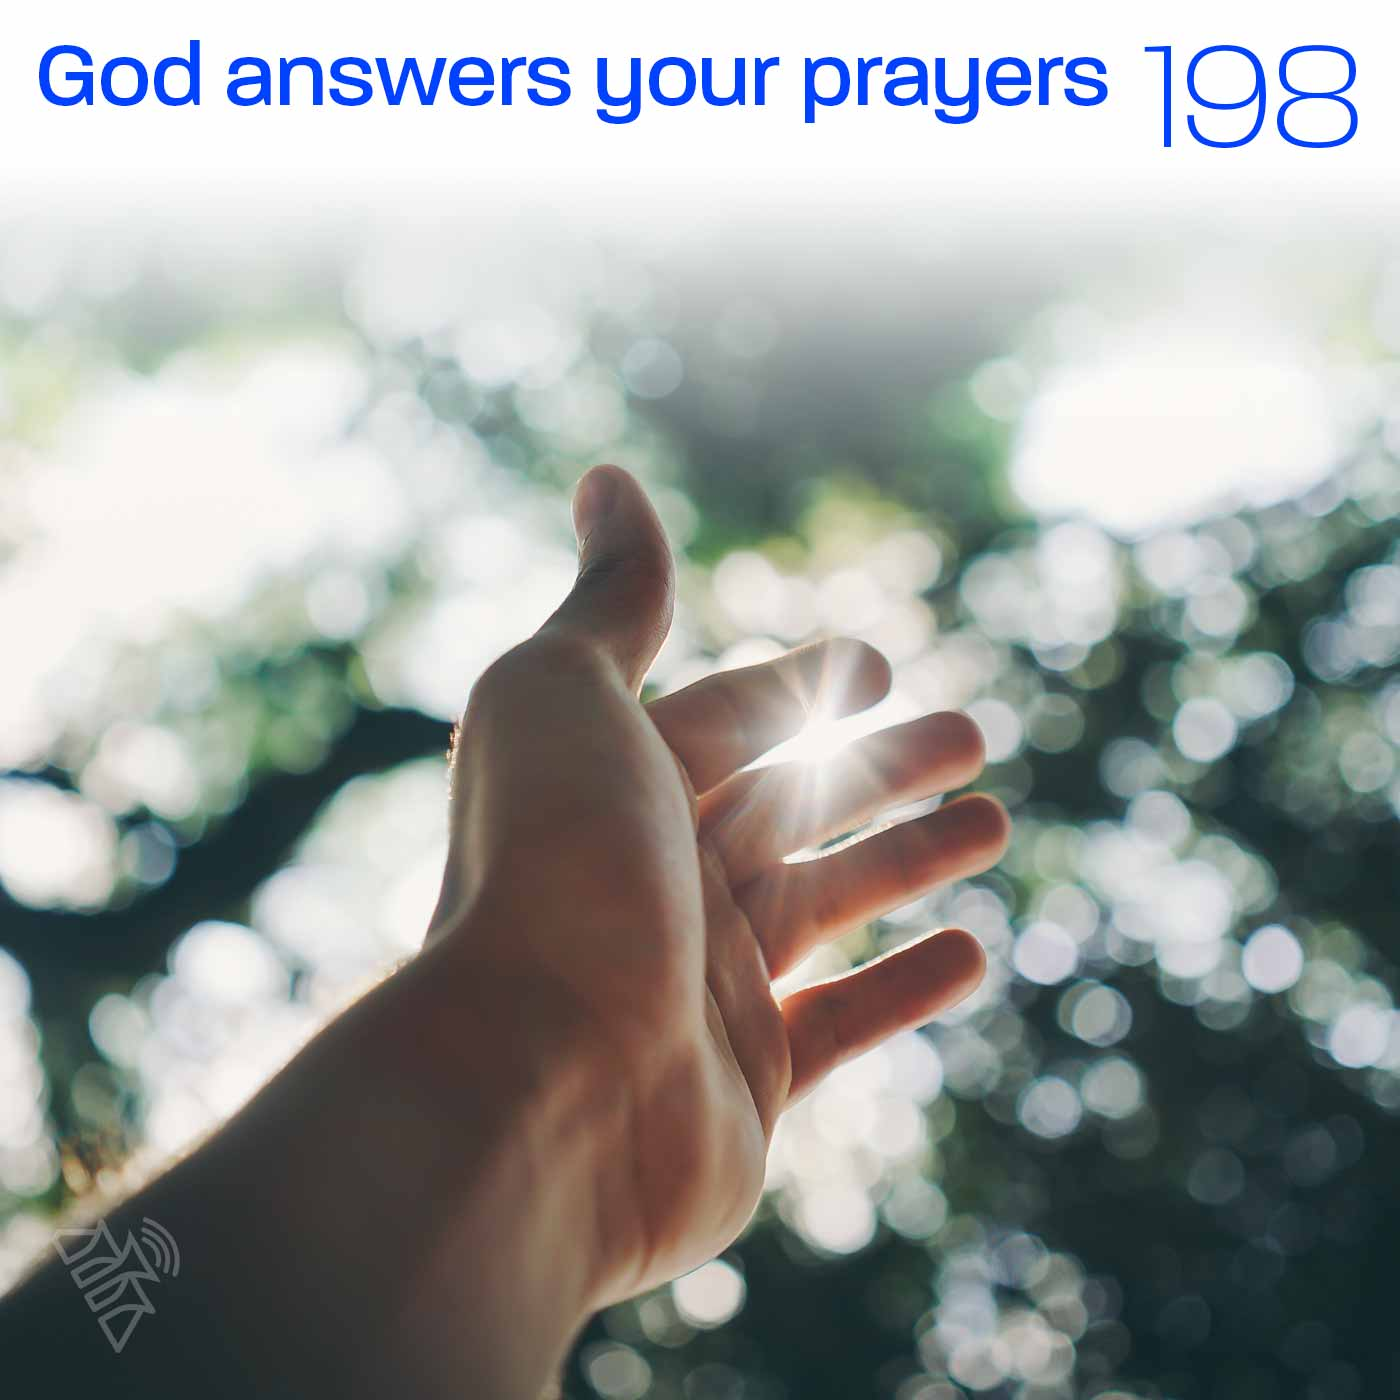 God answers your prayers